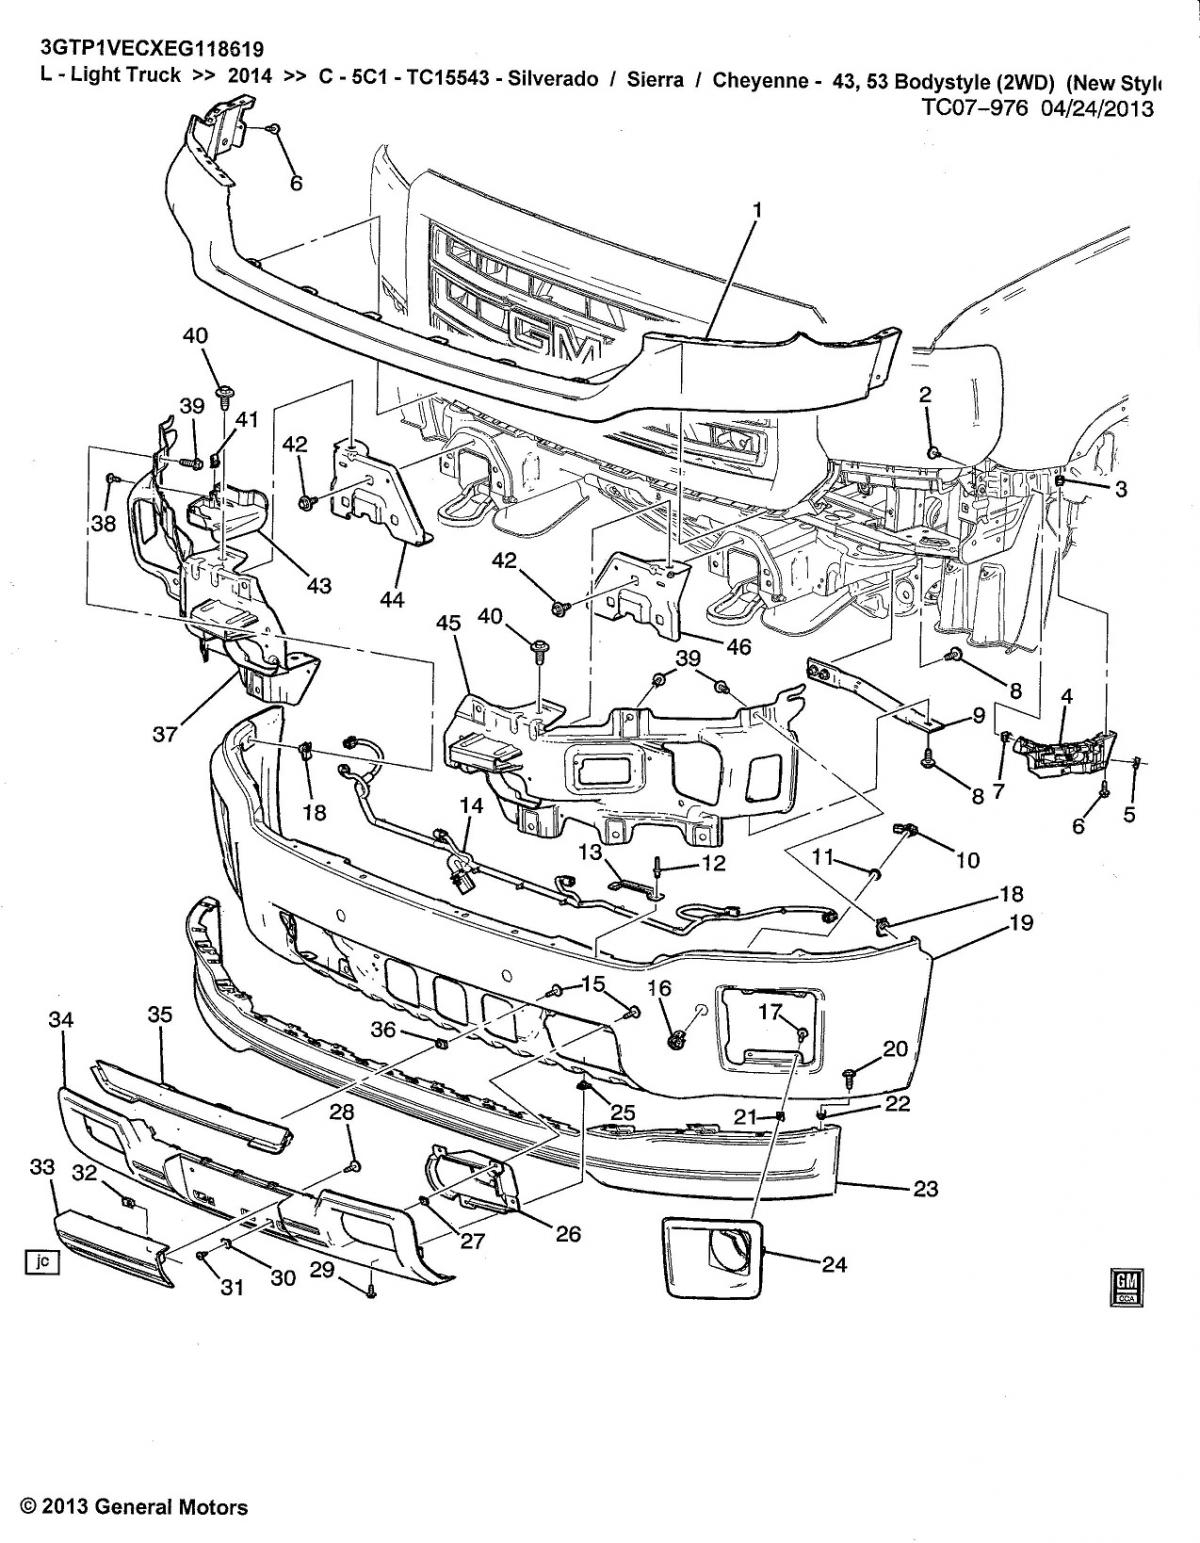 Gm Parts Diagrams With Part Numbers